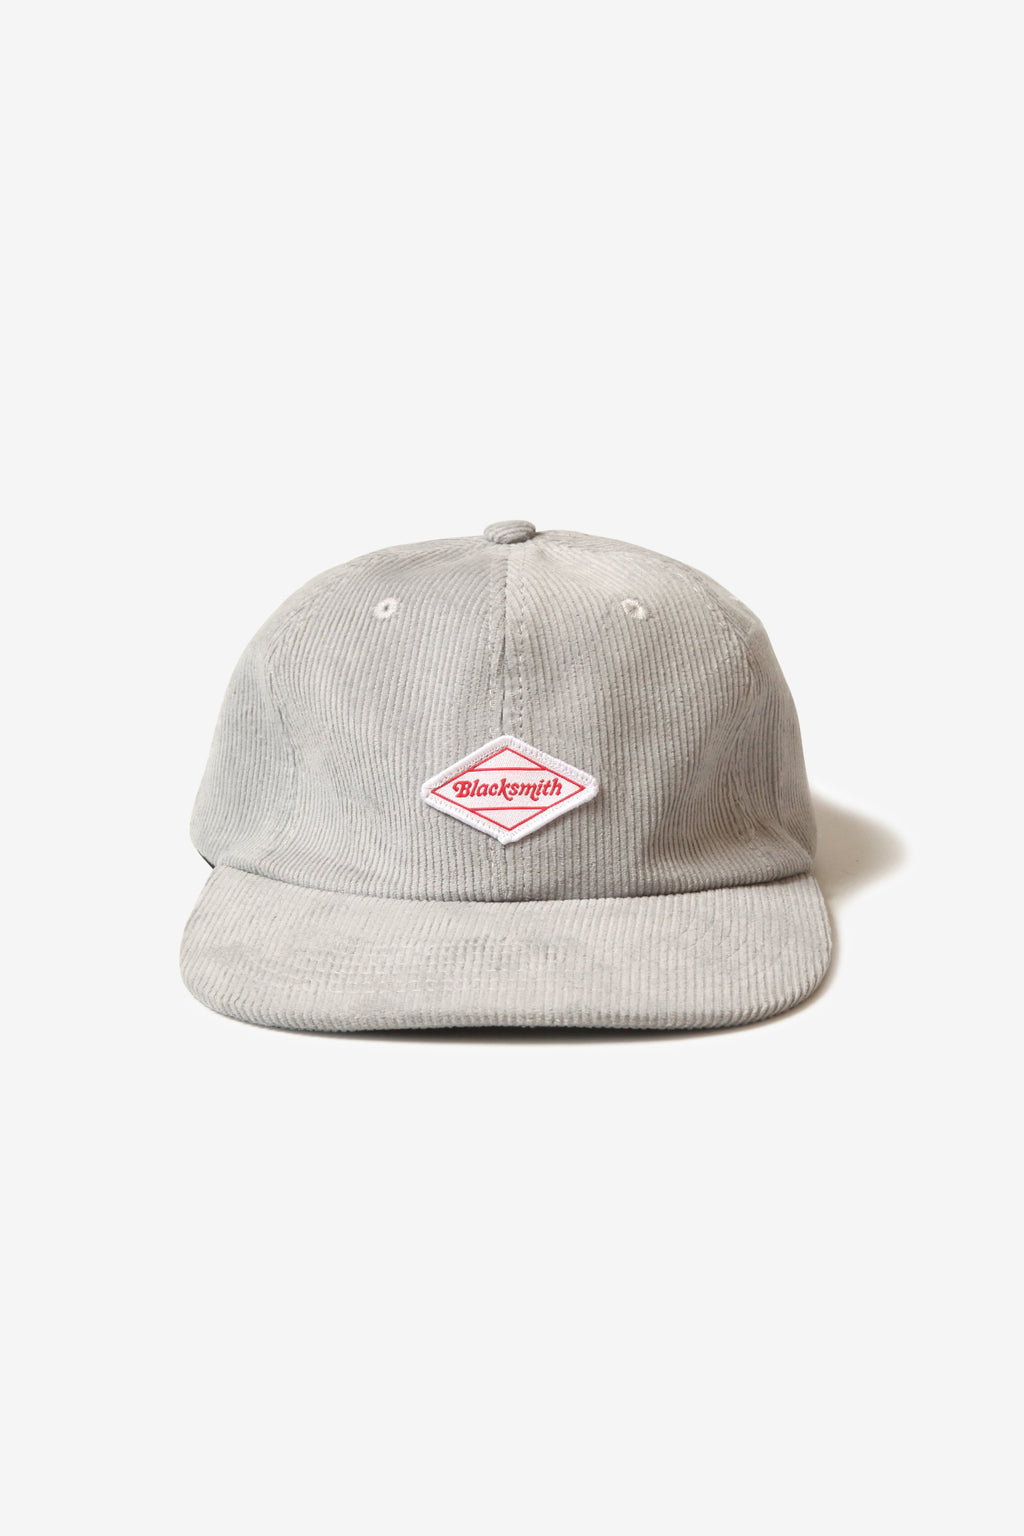 Blacksmith - Corduroy Everyday Cap - Grey